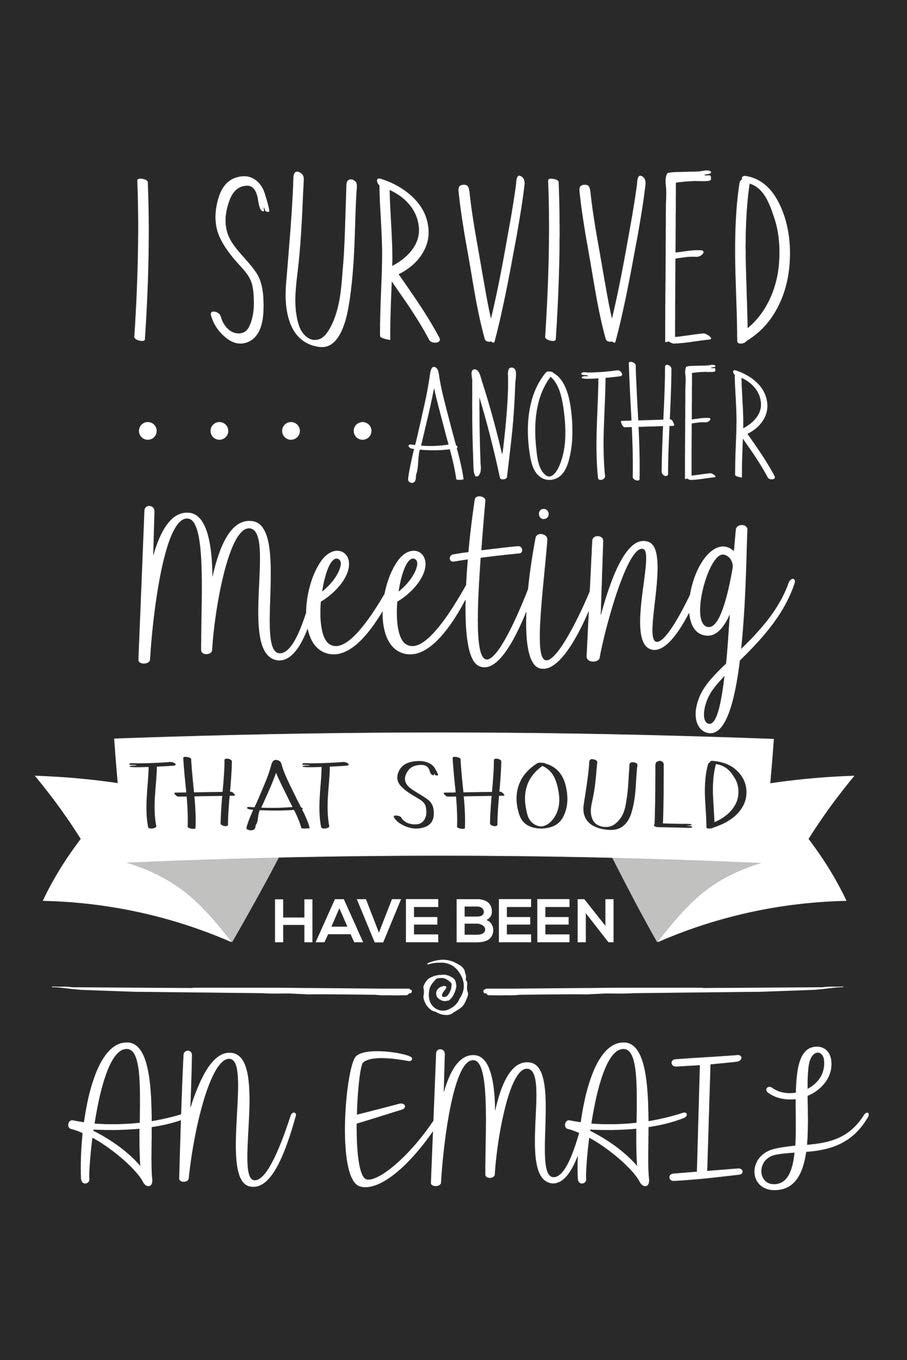 Survivor Of Another Meeting That Could Have Been An Email Pinback Button or Fridge Magnet or Sticker Funny Sarcastic Gag Gift Work Co-Worker